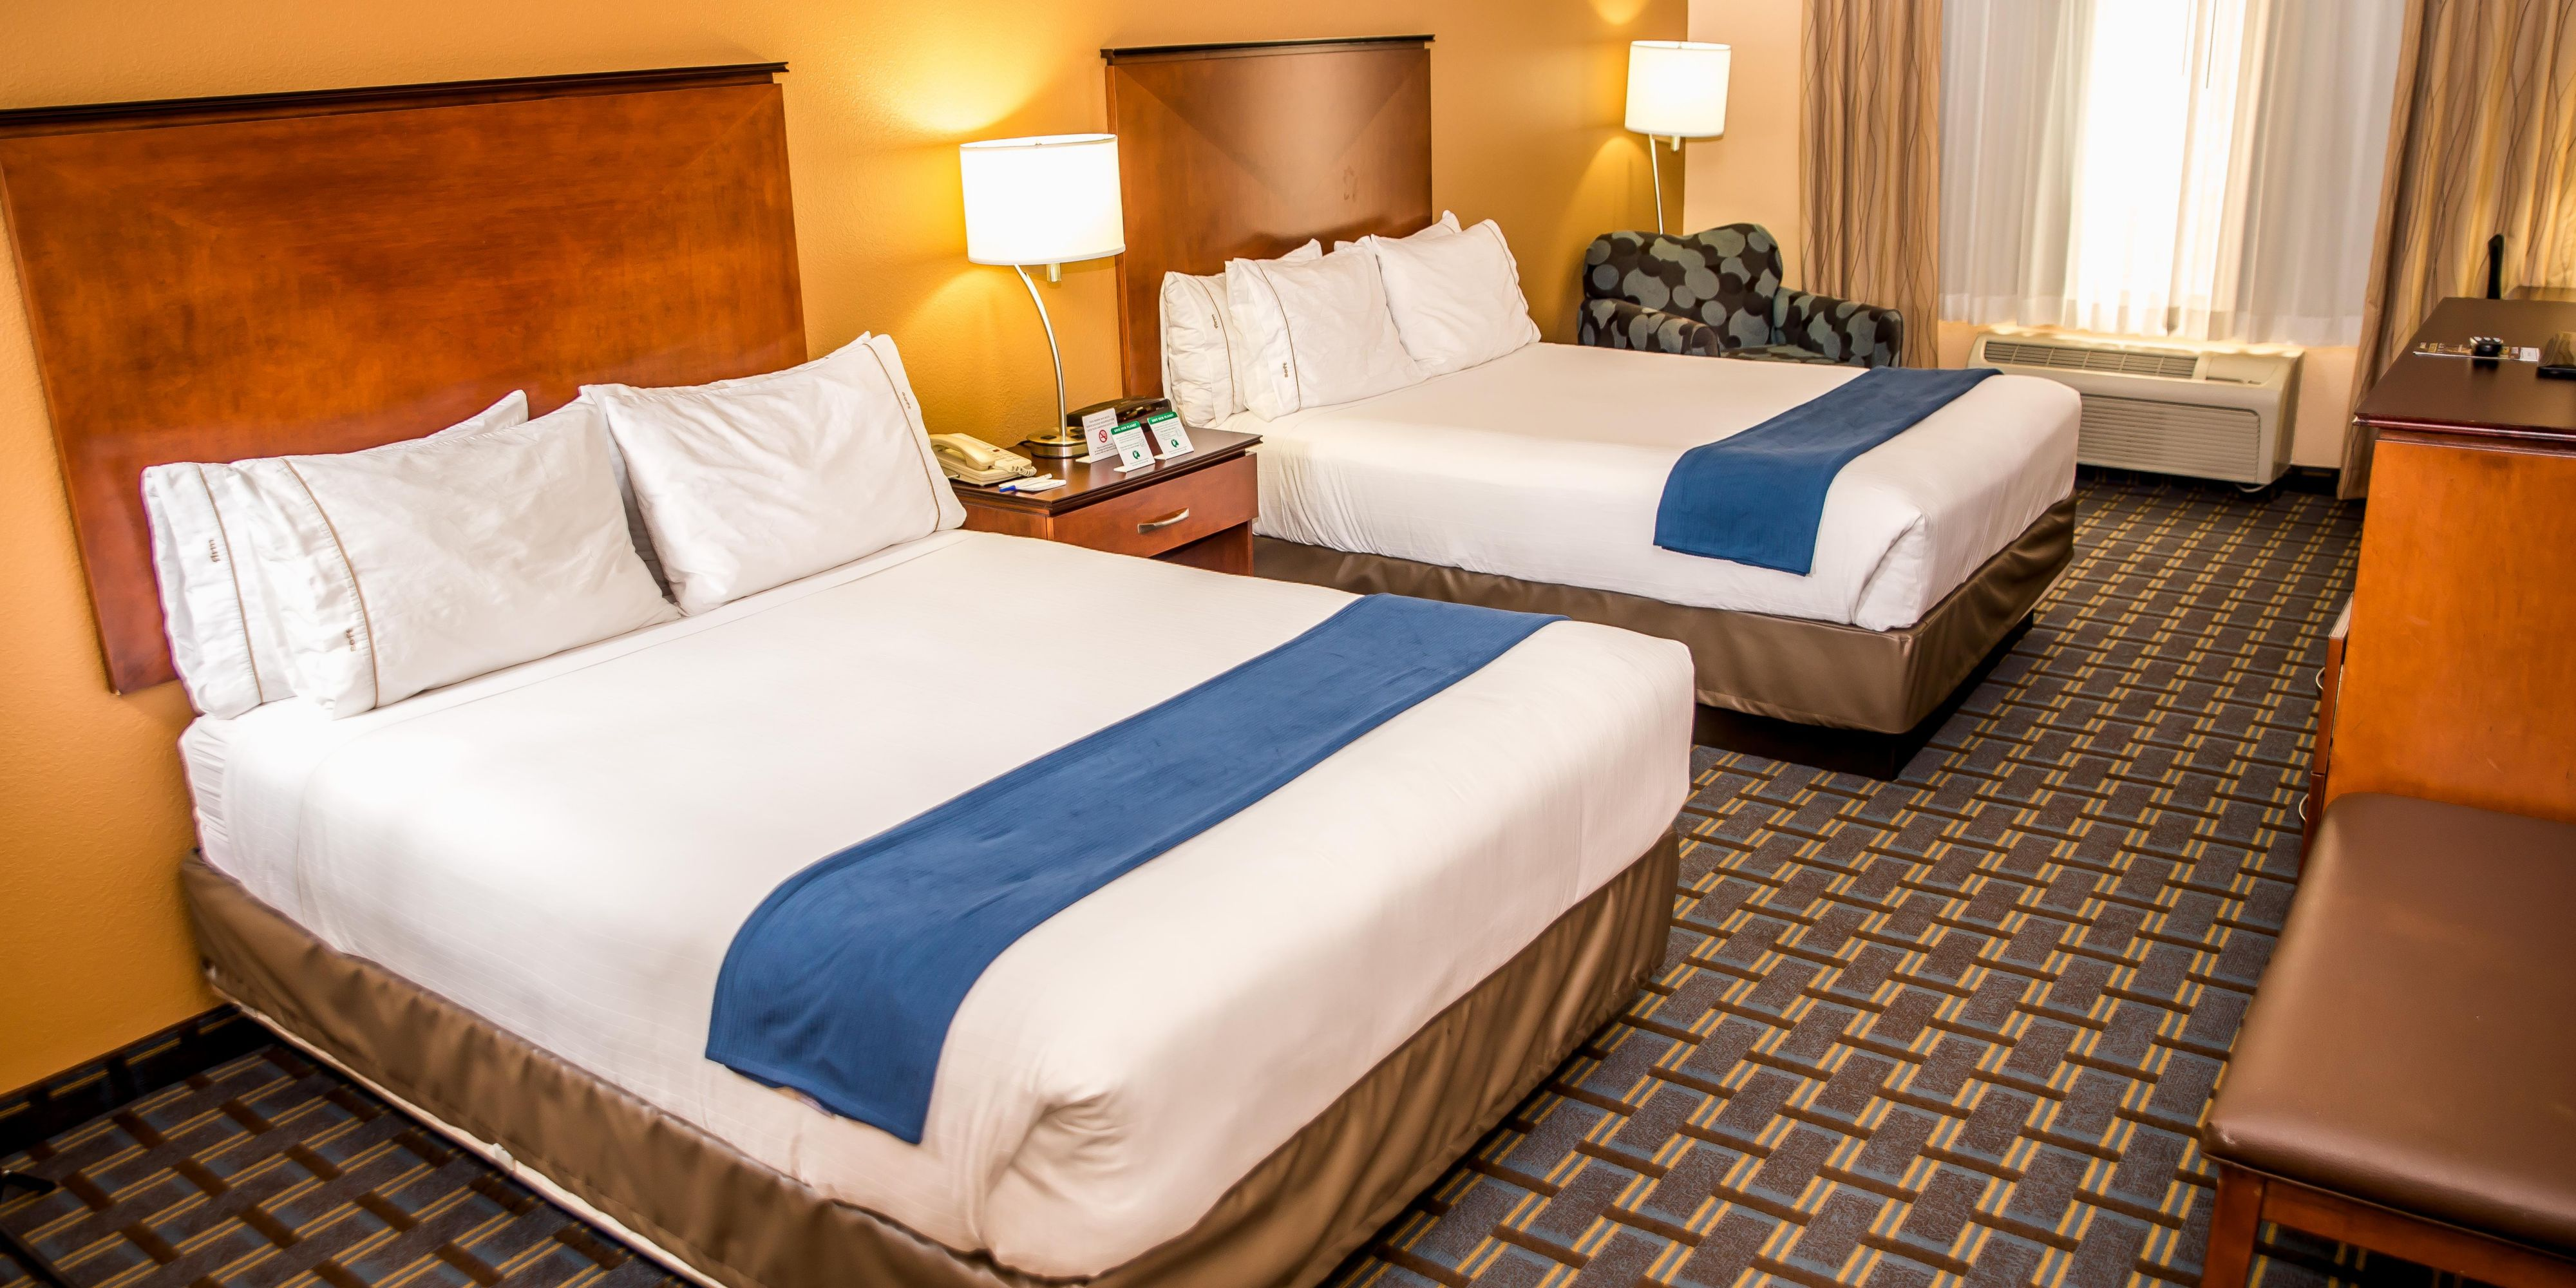 Hotel in Cocoa Beach Florida Holiday Inn Express & Suites